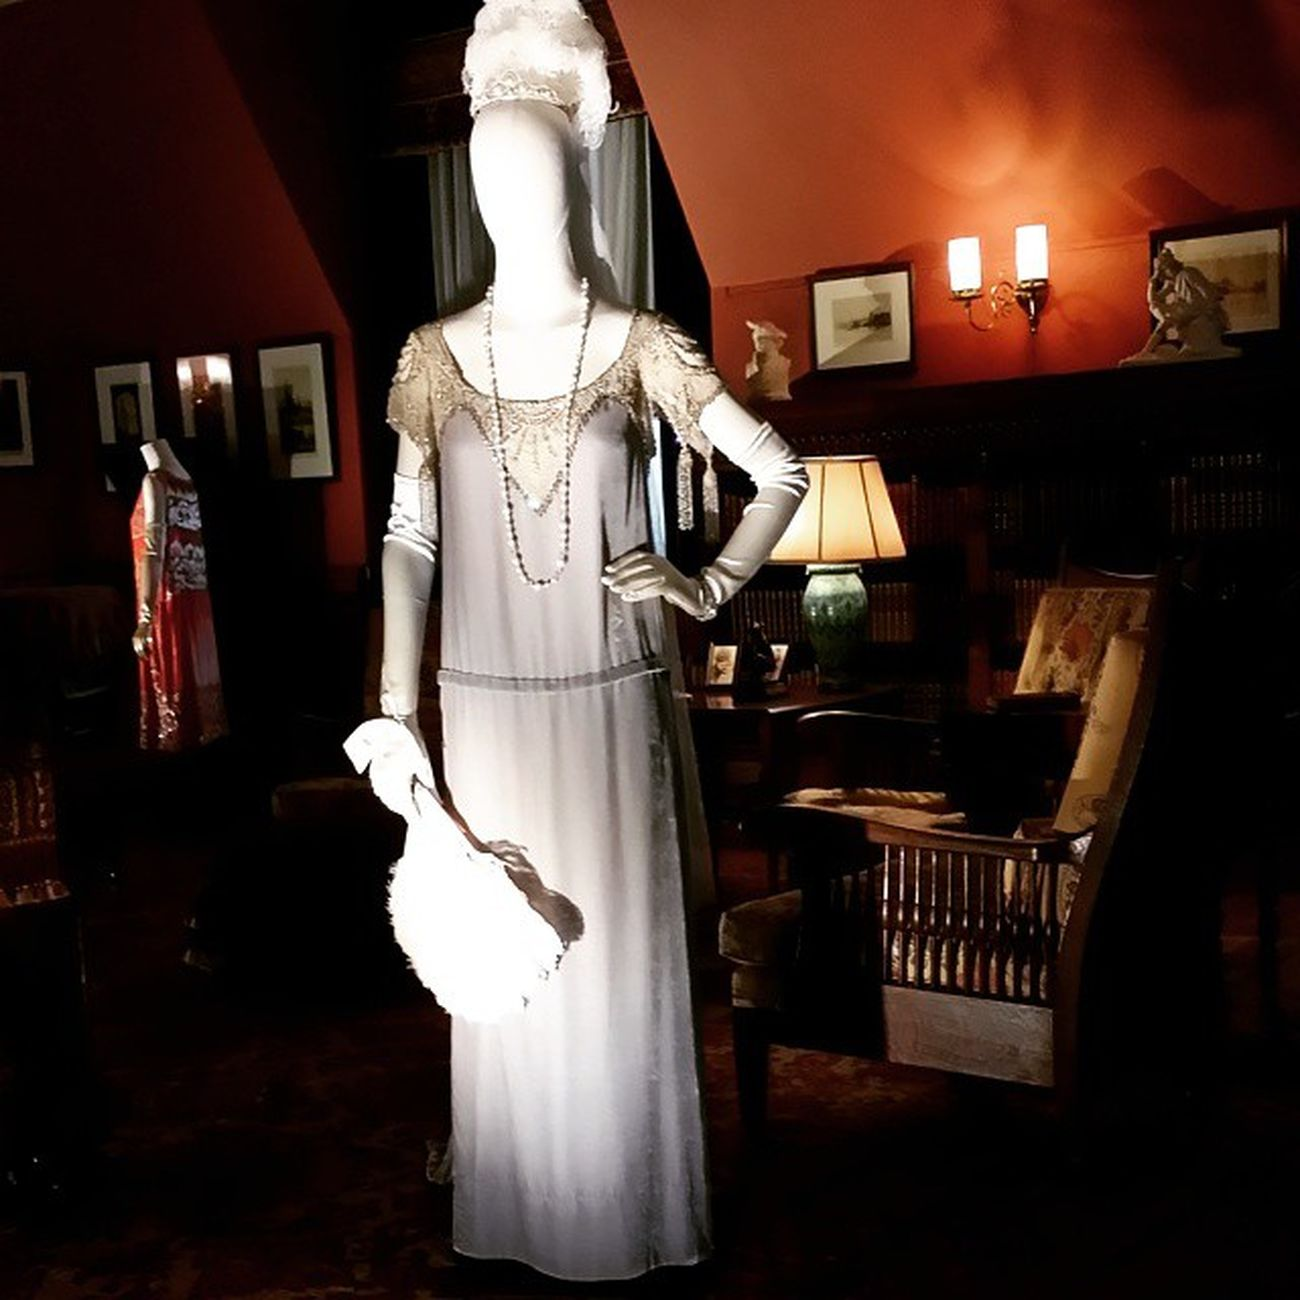 DowntonAbbey costume exhibit at Biltmore Avl Wnc avlent